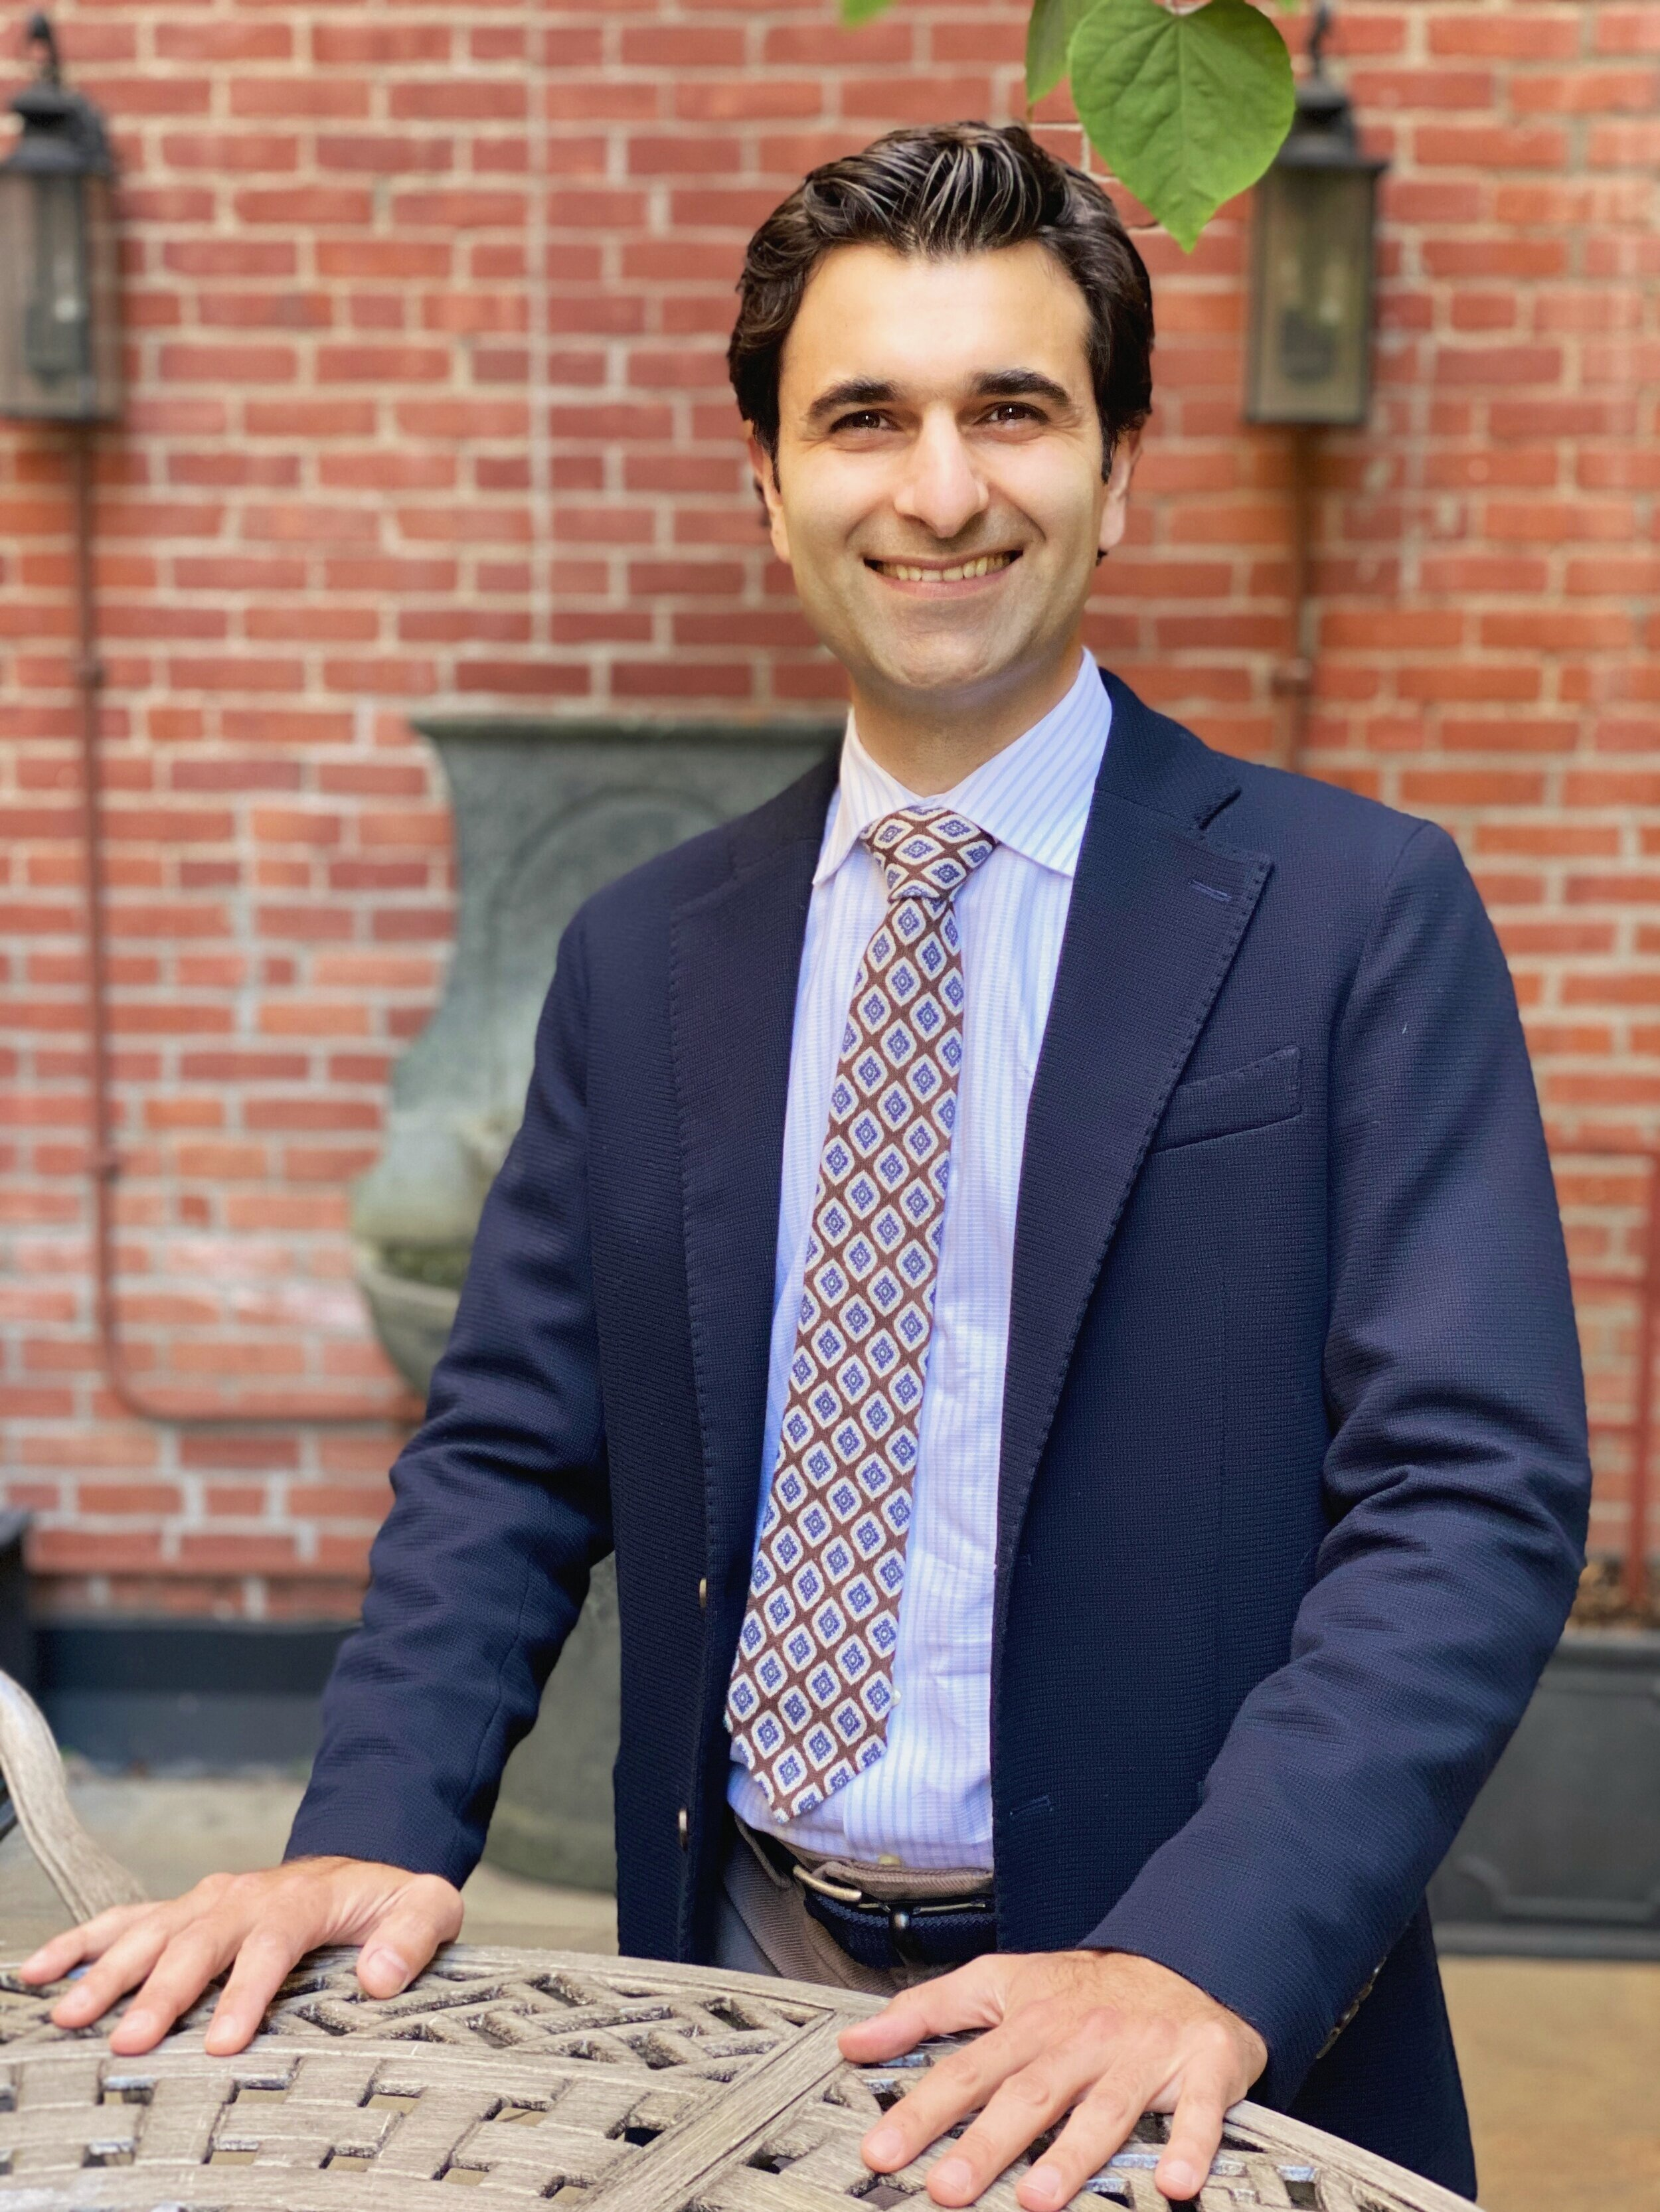 About the Author - Dr. Sam Shamardi is dedicated to help provide solutions to unaddressed issues within dentistry.  He is motivated to help others through leadership, teaching, clinical practice and entrepreneurial ventures .Learn more about his background and current projects in motion!